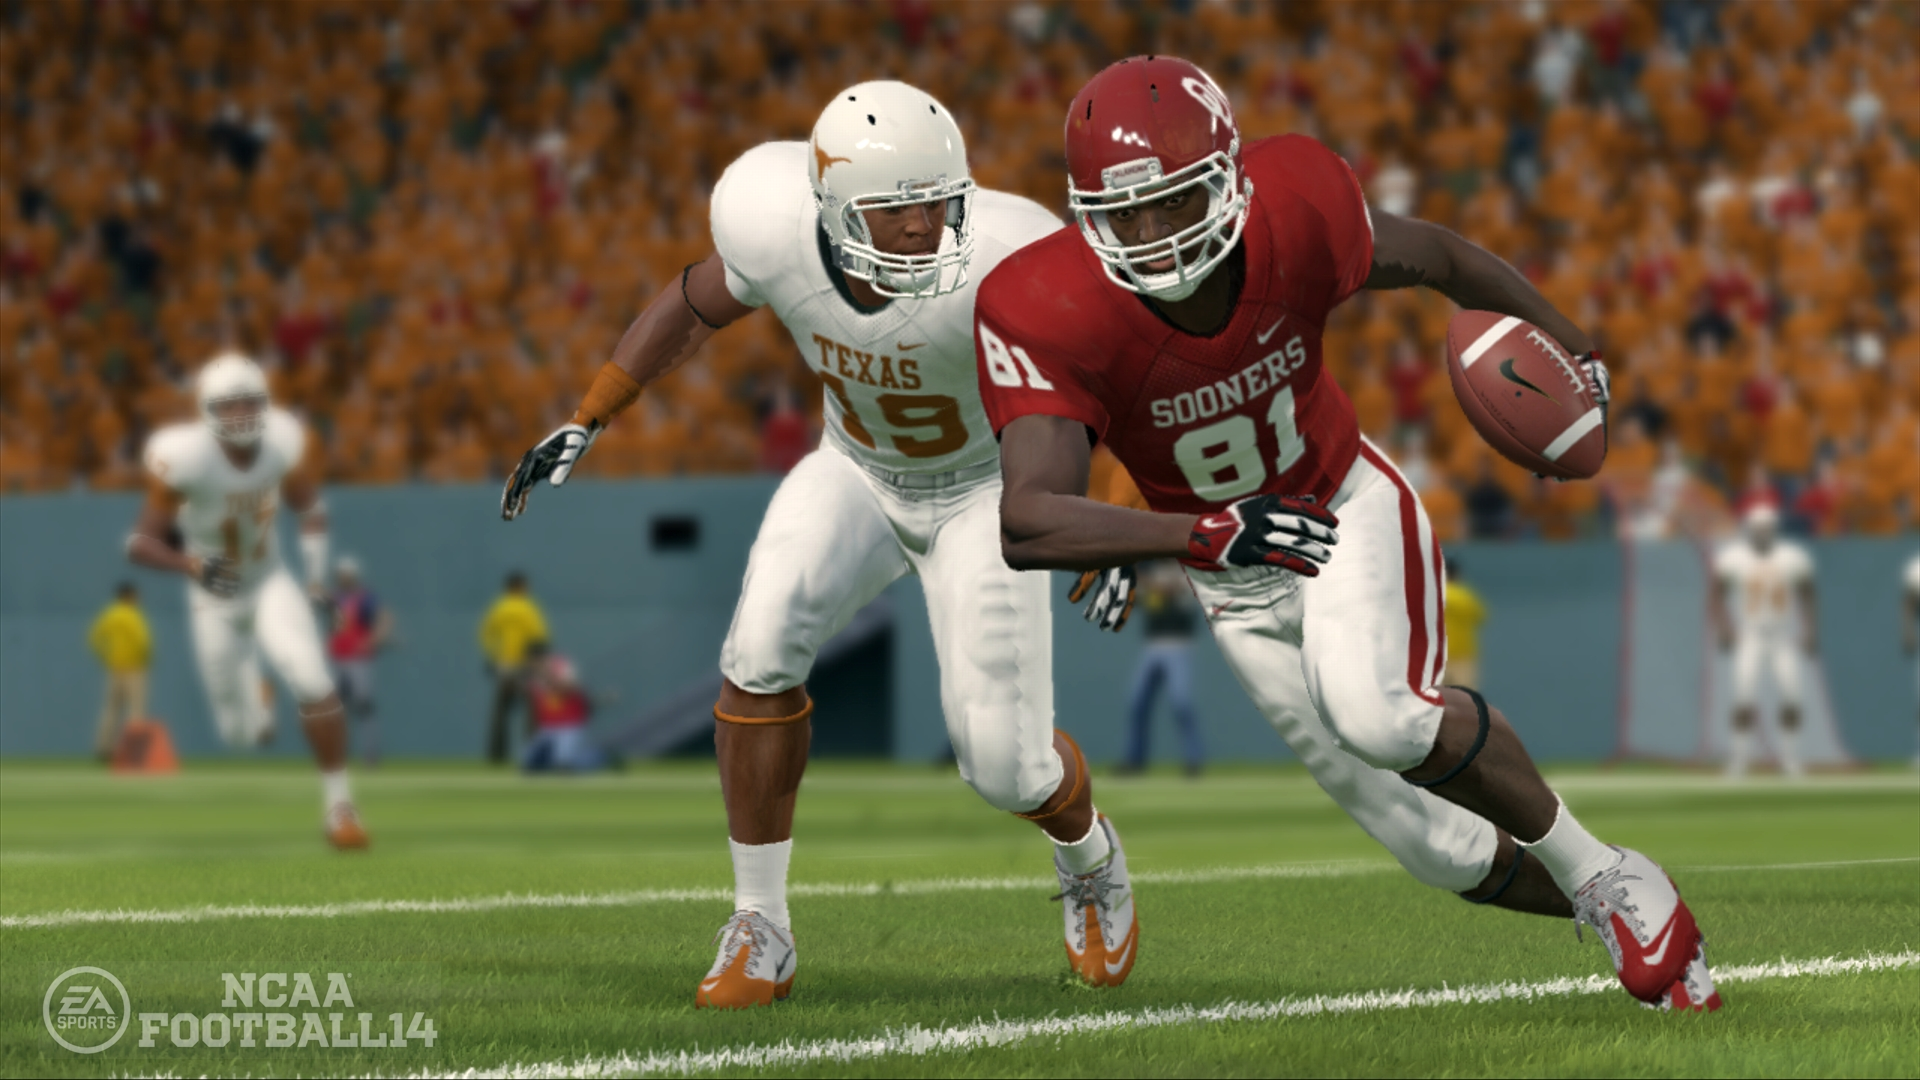 a defender for the Texas Longhorns, wearing an all-white #19 jersey, tracks an Oklahoma Sooners wide receiver carrying the ball in a crimson-and-white #81 uniform, in a screenshot from NCAA Football 14